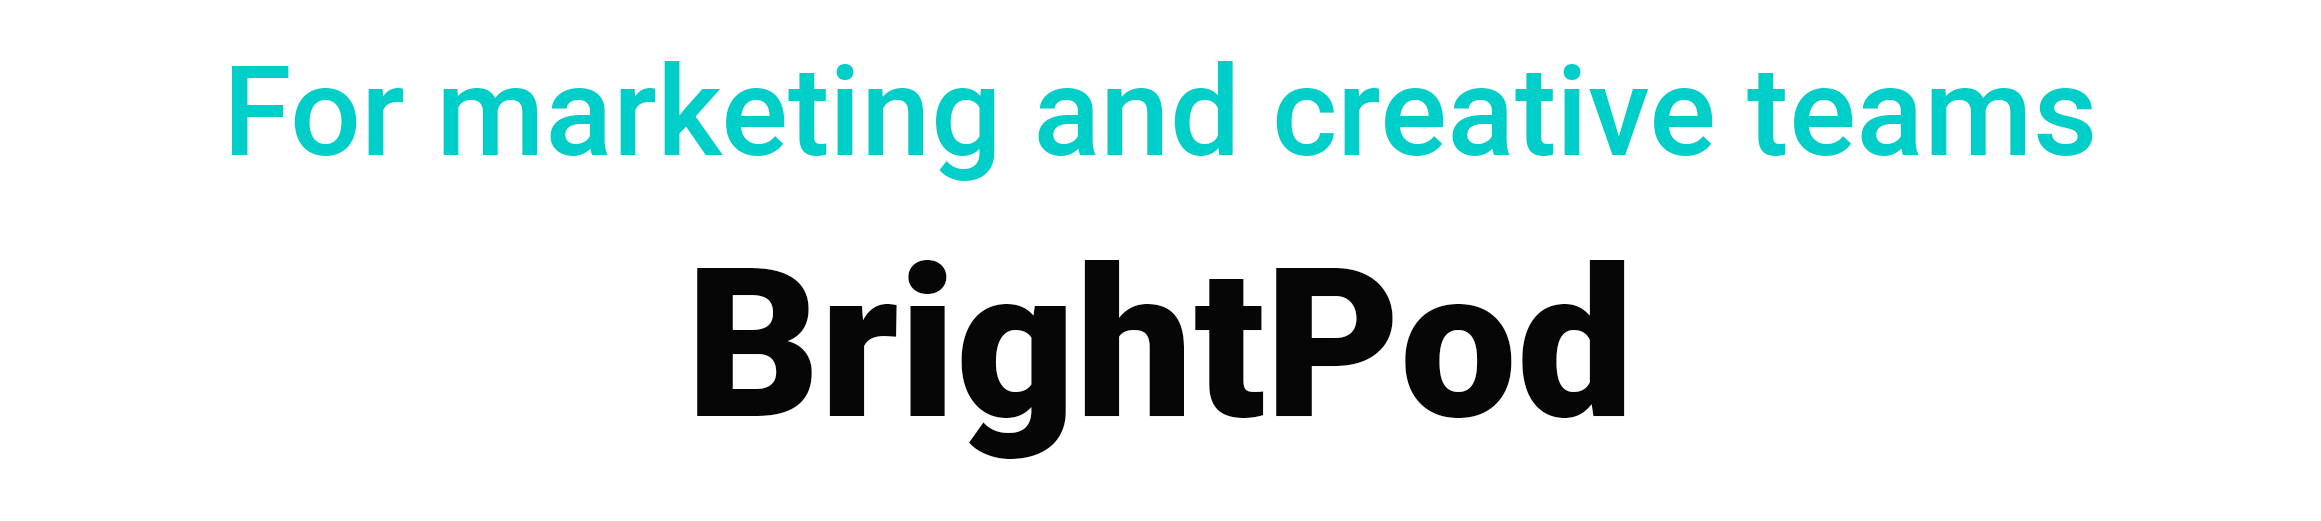 For marketing and creative teams BRIGHTPOD project management tools